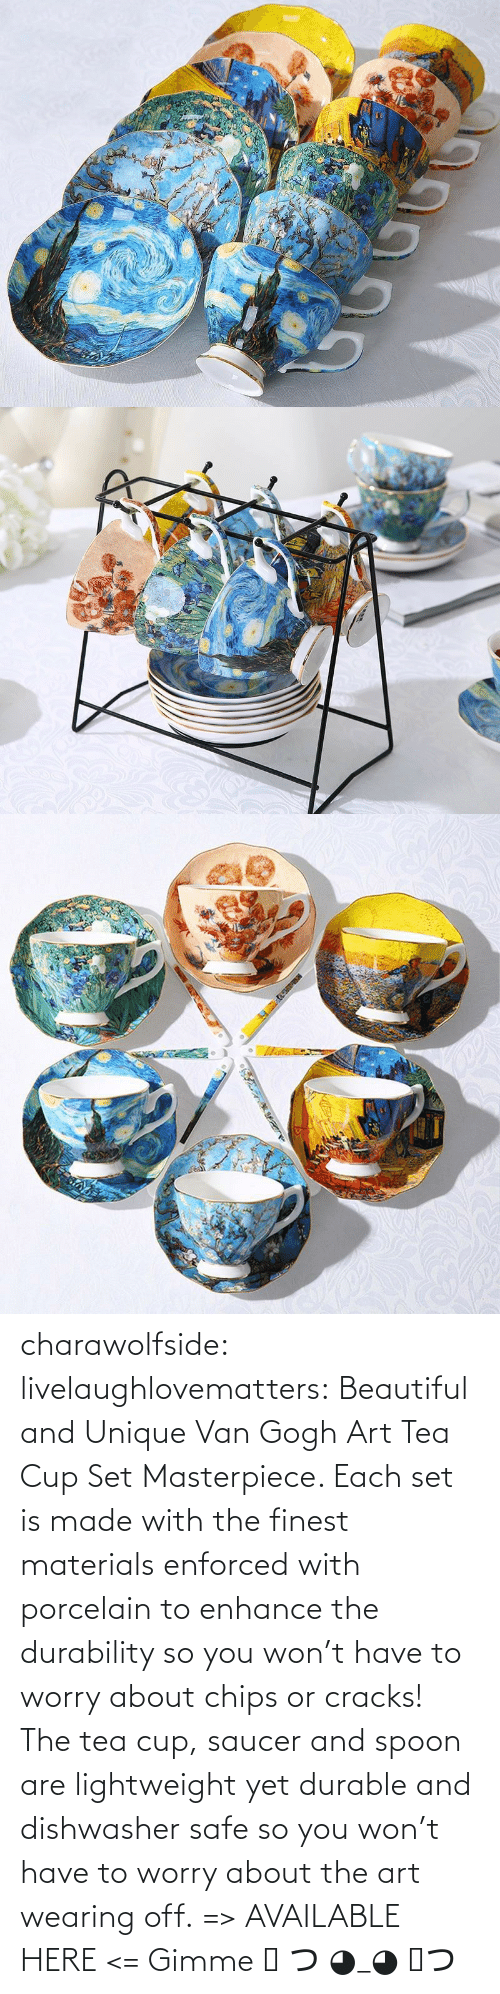 Beautiful, Tumblr, and Blog: charawolfside: livelaughlovematters:  Beautiful and Unique Van Gogh Art Tea Cup Set Masterpiece. Each set is made with the finest materials enforced with porcelain to enhance the durability so you won't have to worry about chips or cracks! The tea cup, saucer and spoon are lightweight yet durable and dishwasher safe so you won't have to worry about the art wearing off. => AVAILABLE HERE <=    Gimme ༼つ◕_◕༽つ